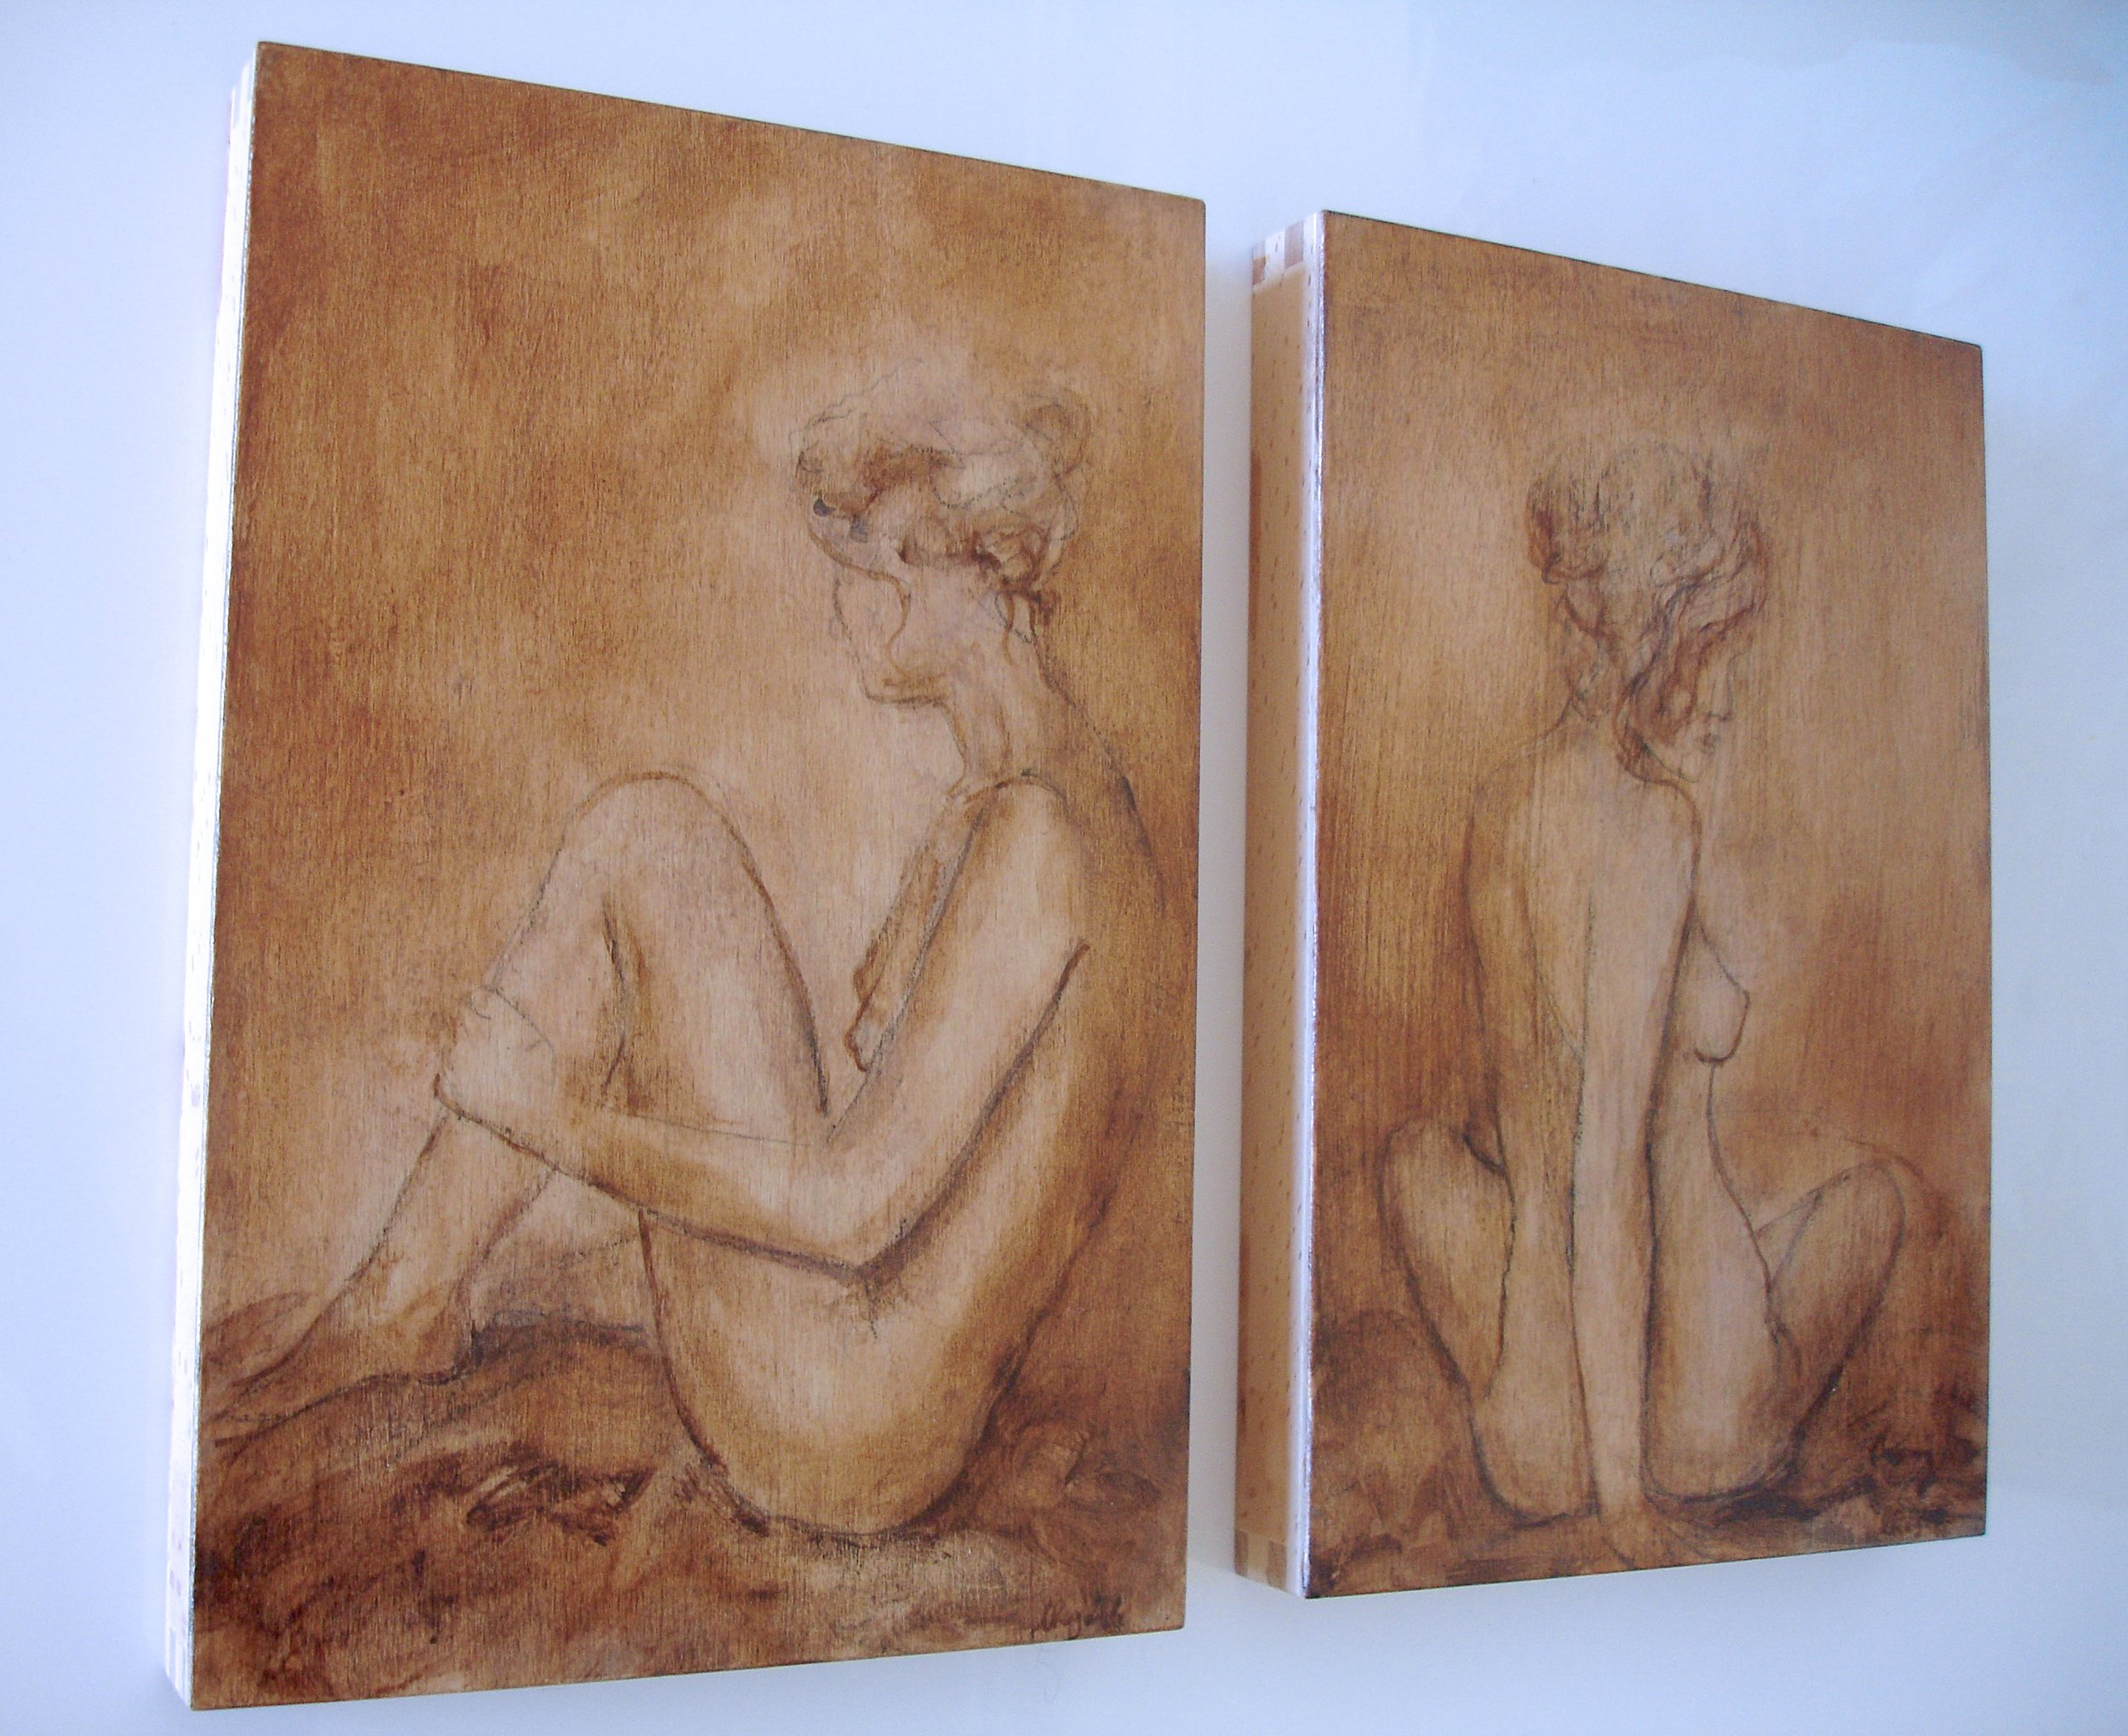 Eternity Nudes, 20 x 30cm each